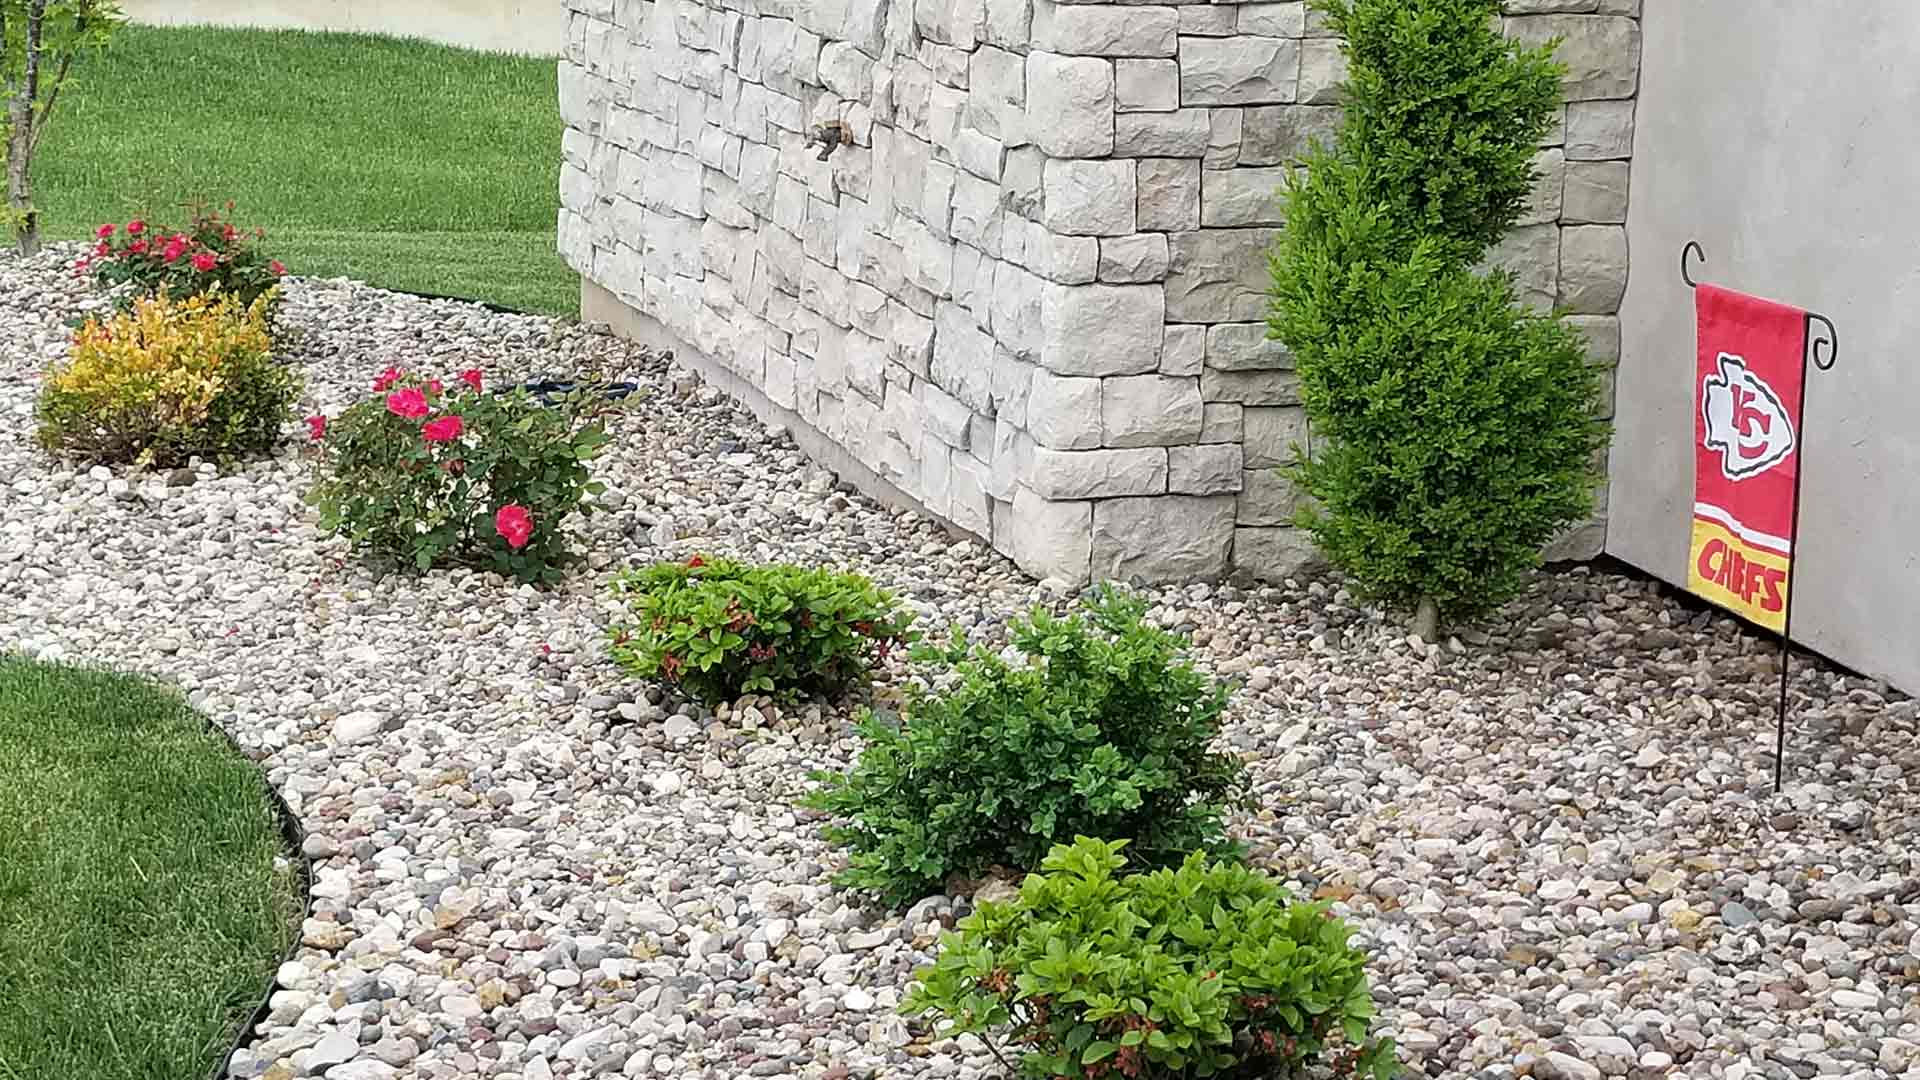 Ground covering by McVey Mowing at Columbia, MO home's front yard with flowers and river gravel.